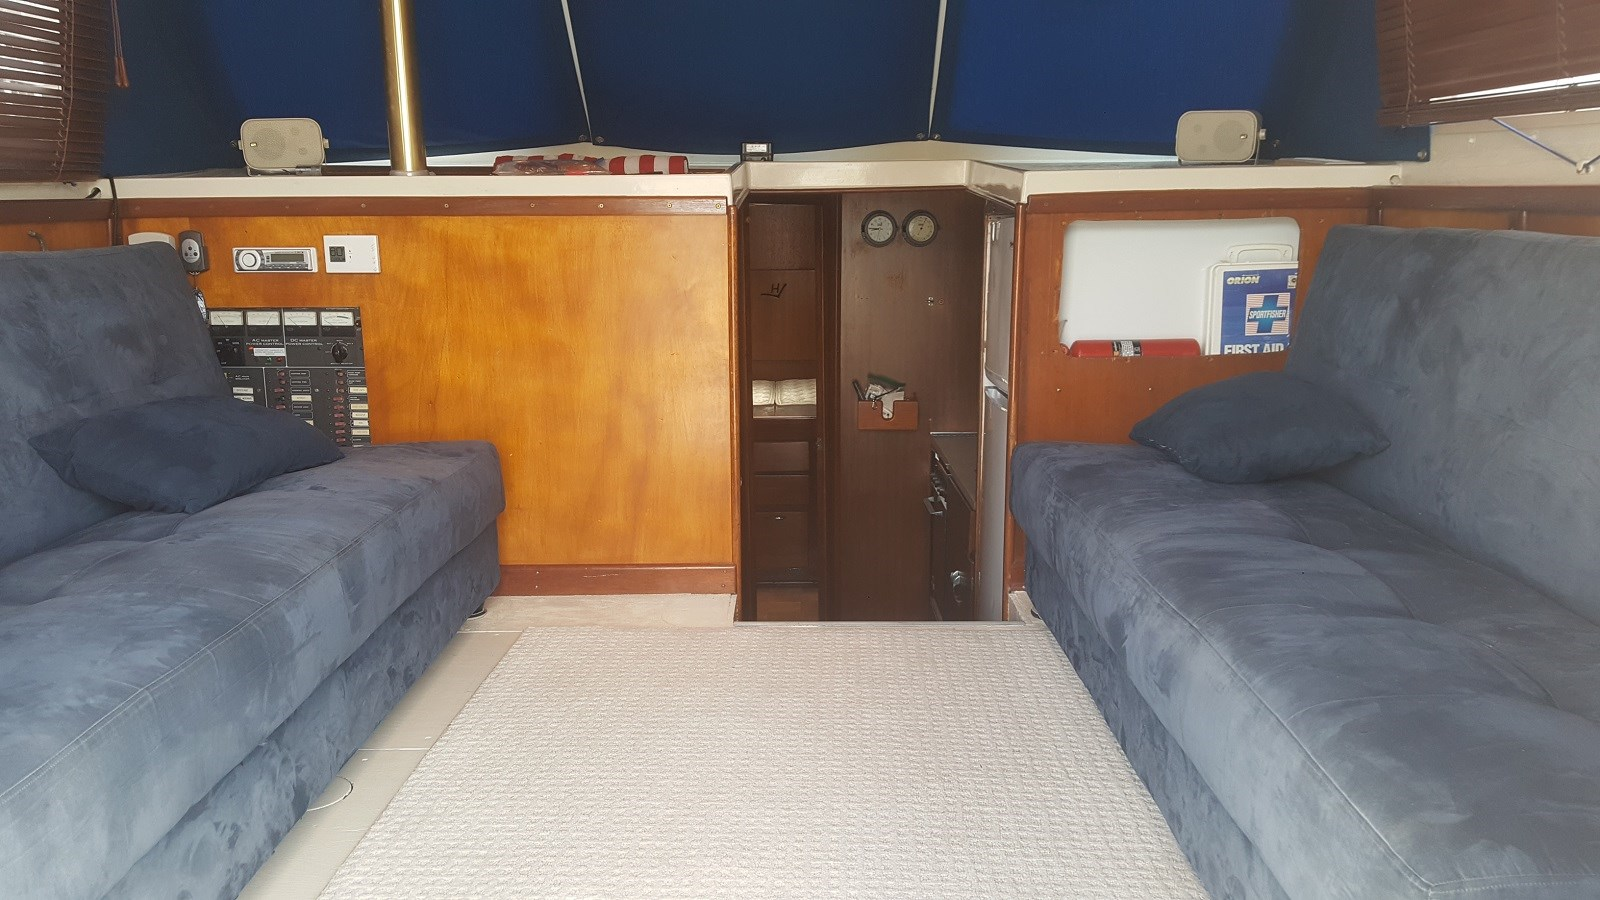 TwinFold-DownCouch-Beds with storage for spares - supplies - tools (new rug) - 34 HATTERAS For Sale